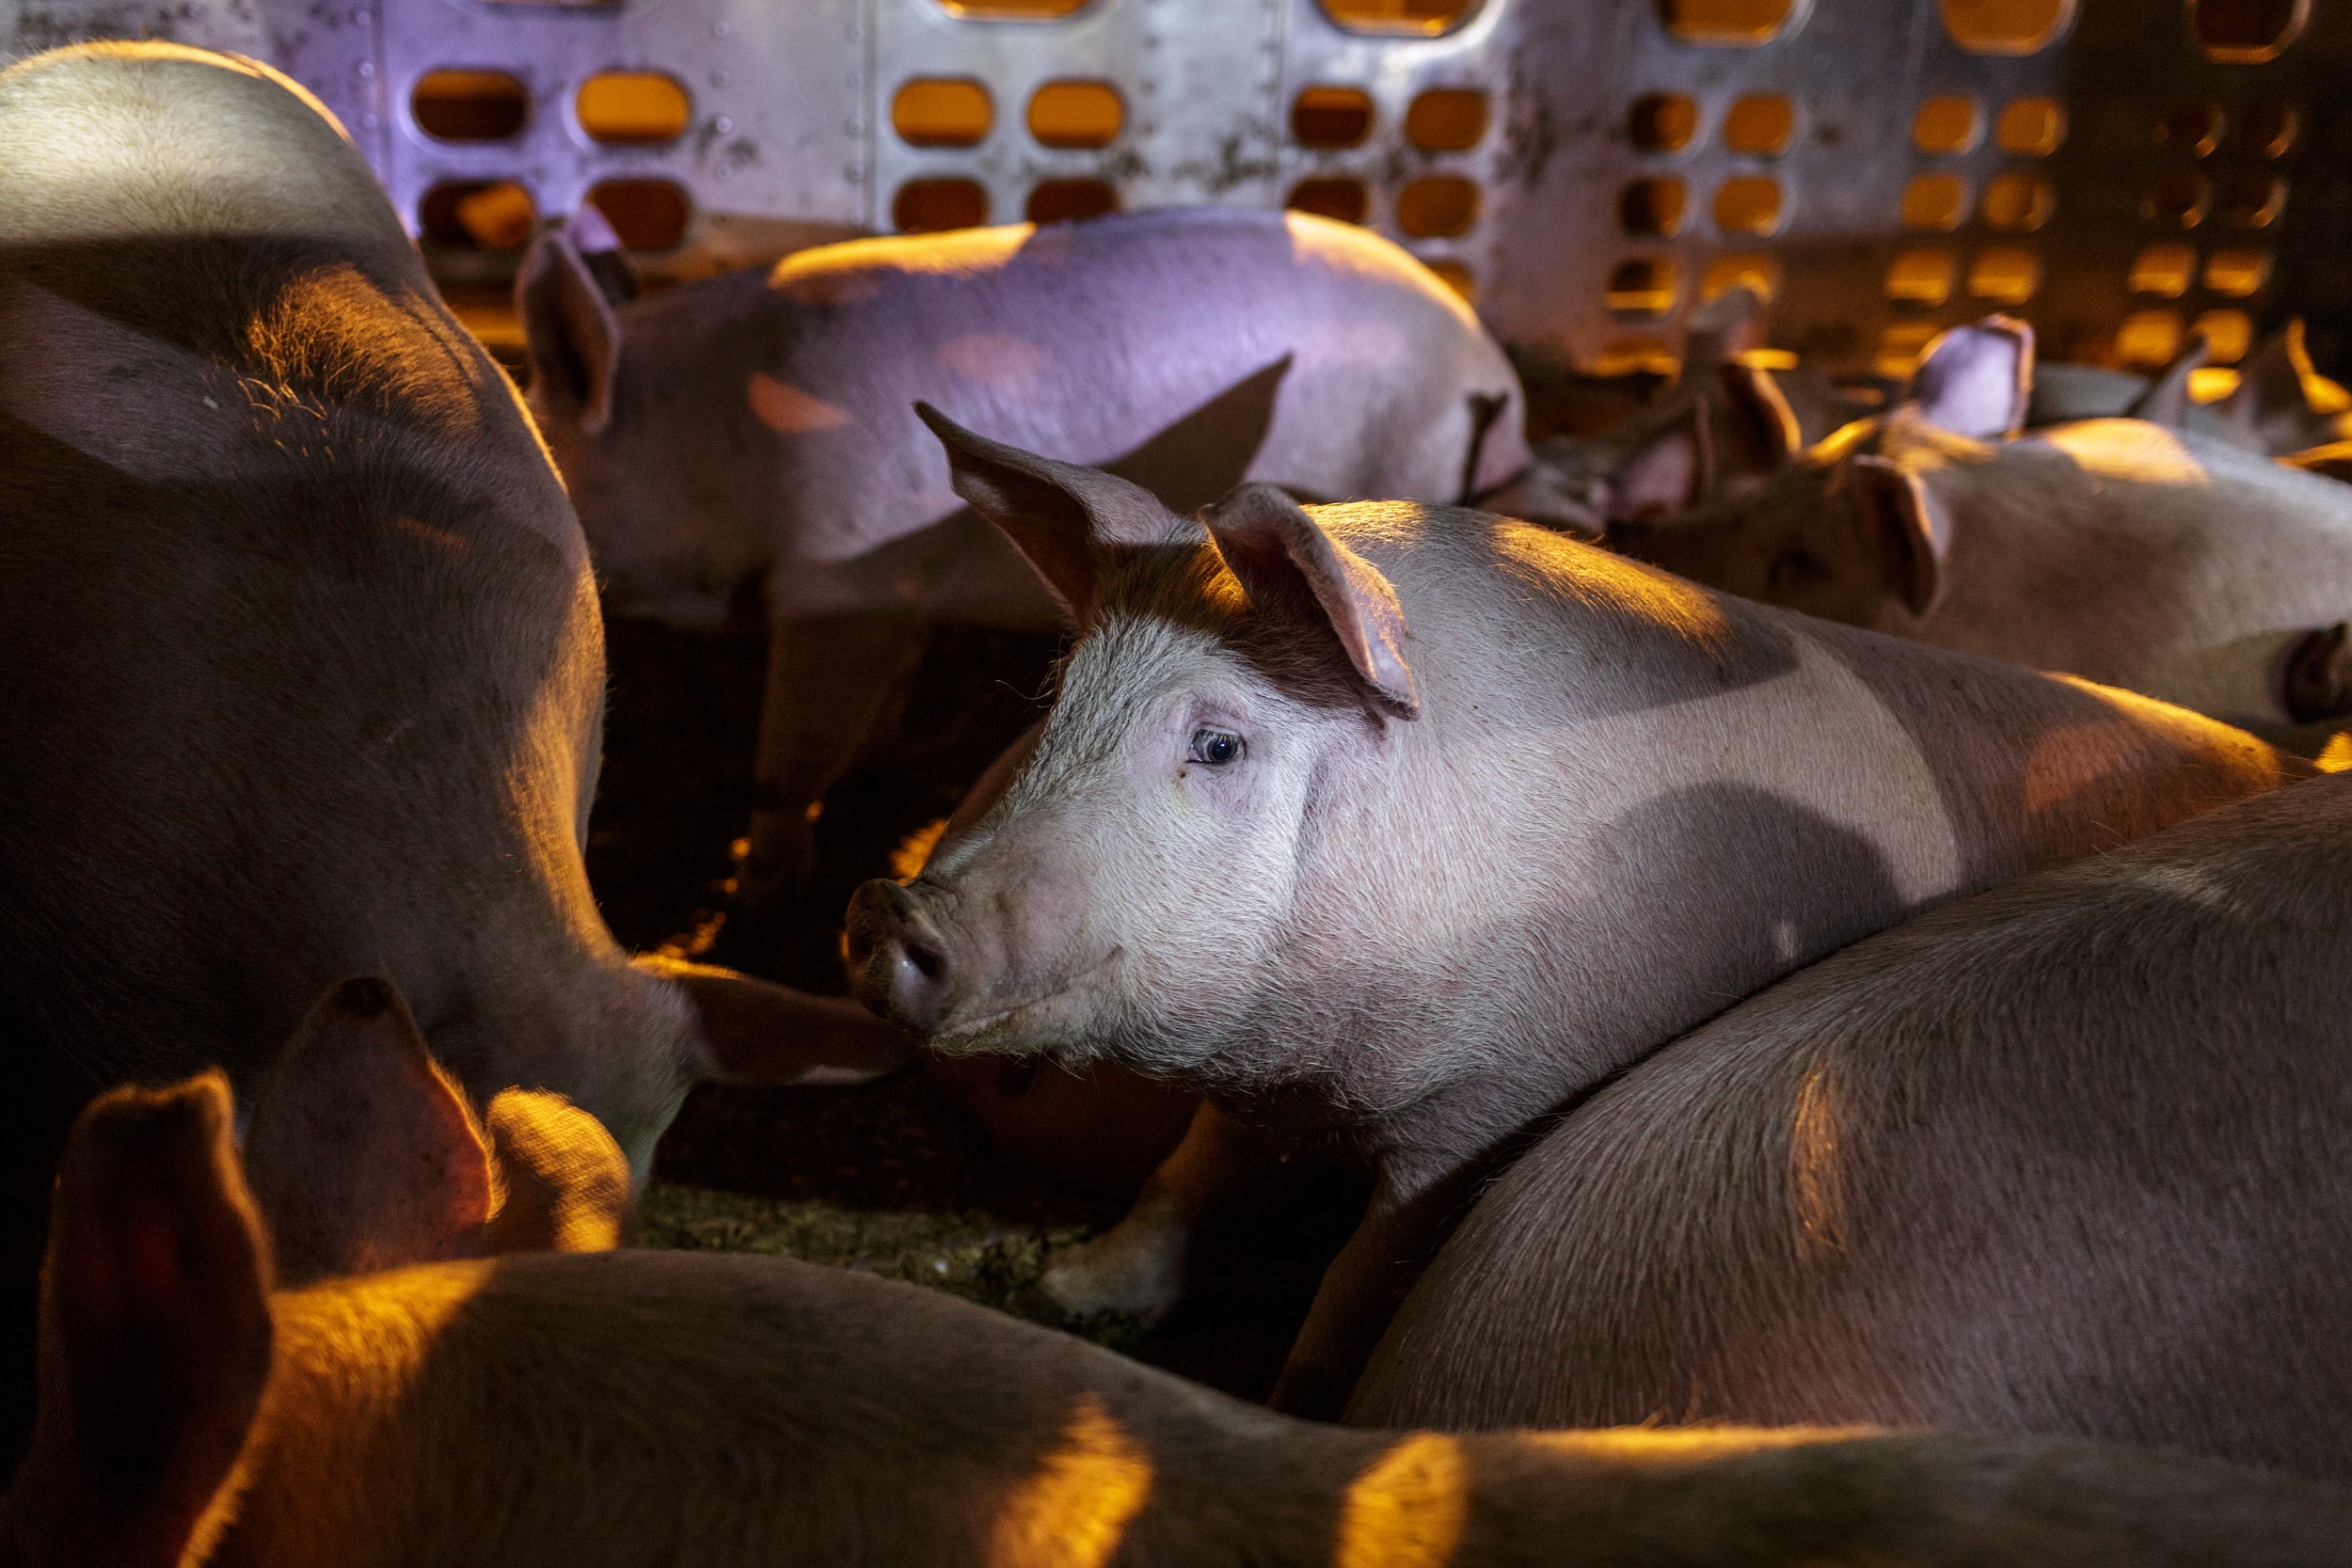 Pigs sit quietly on the two storey metal truck taking them in through the gates of Farmer John, a meatpacking facility in the city of Vernon, Los Angeles, CA. Activists claim that the pigs receive no food or water during their journey, which may take several days from farm to slaughterhouse.  March 22nd 2017 Photo by Ruth Iorio